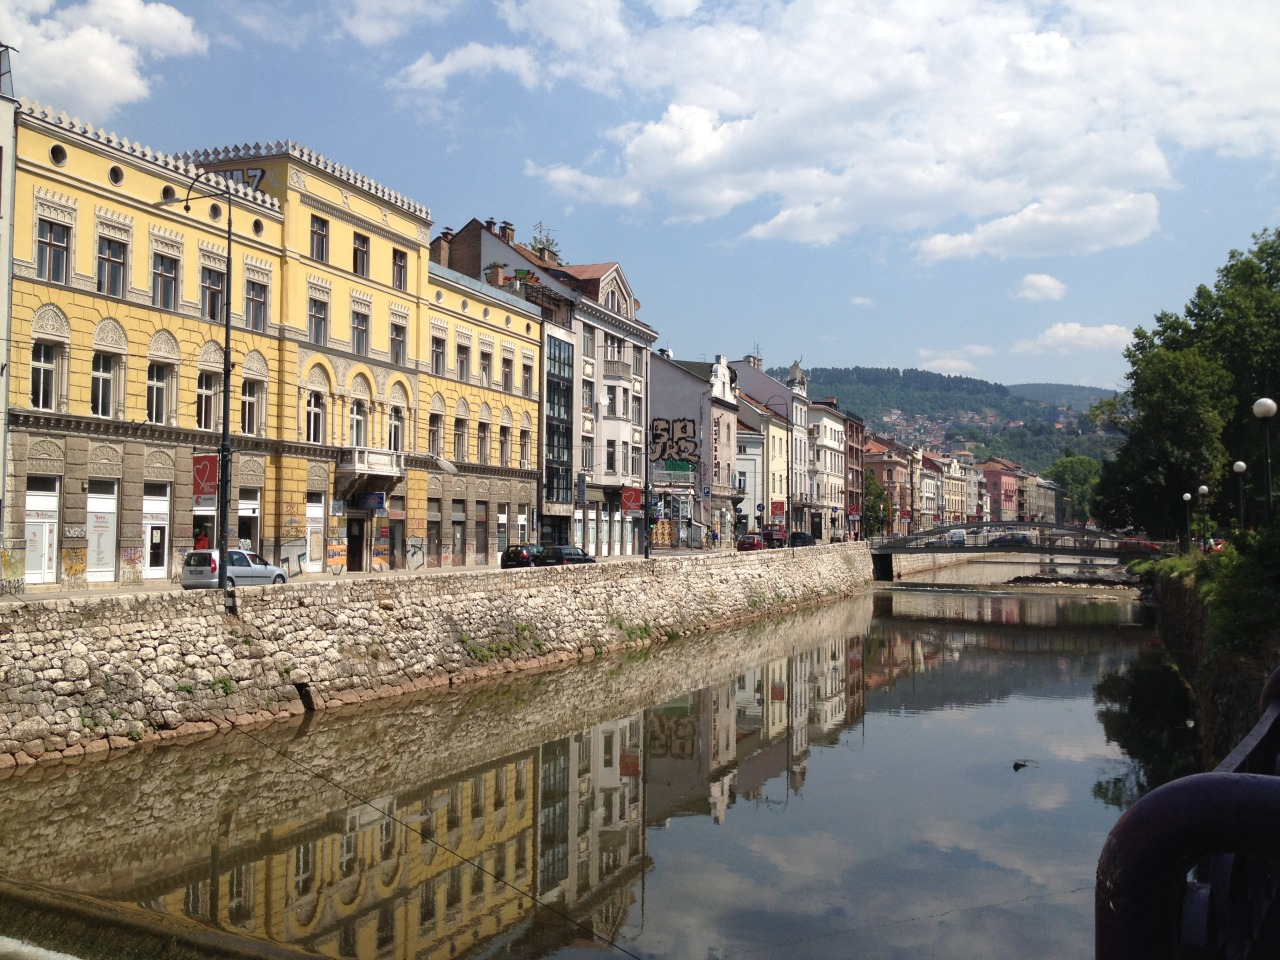 The Austro-Hungarian part of Sarajevo, by the bridge where Franz Ferdinand was assassinated